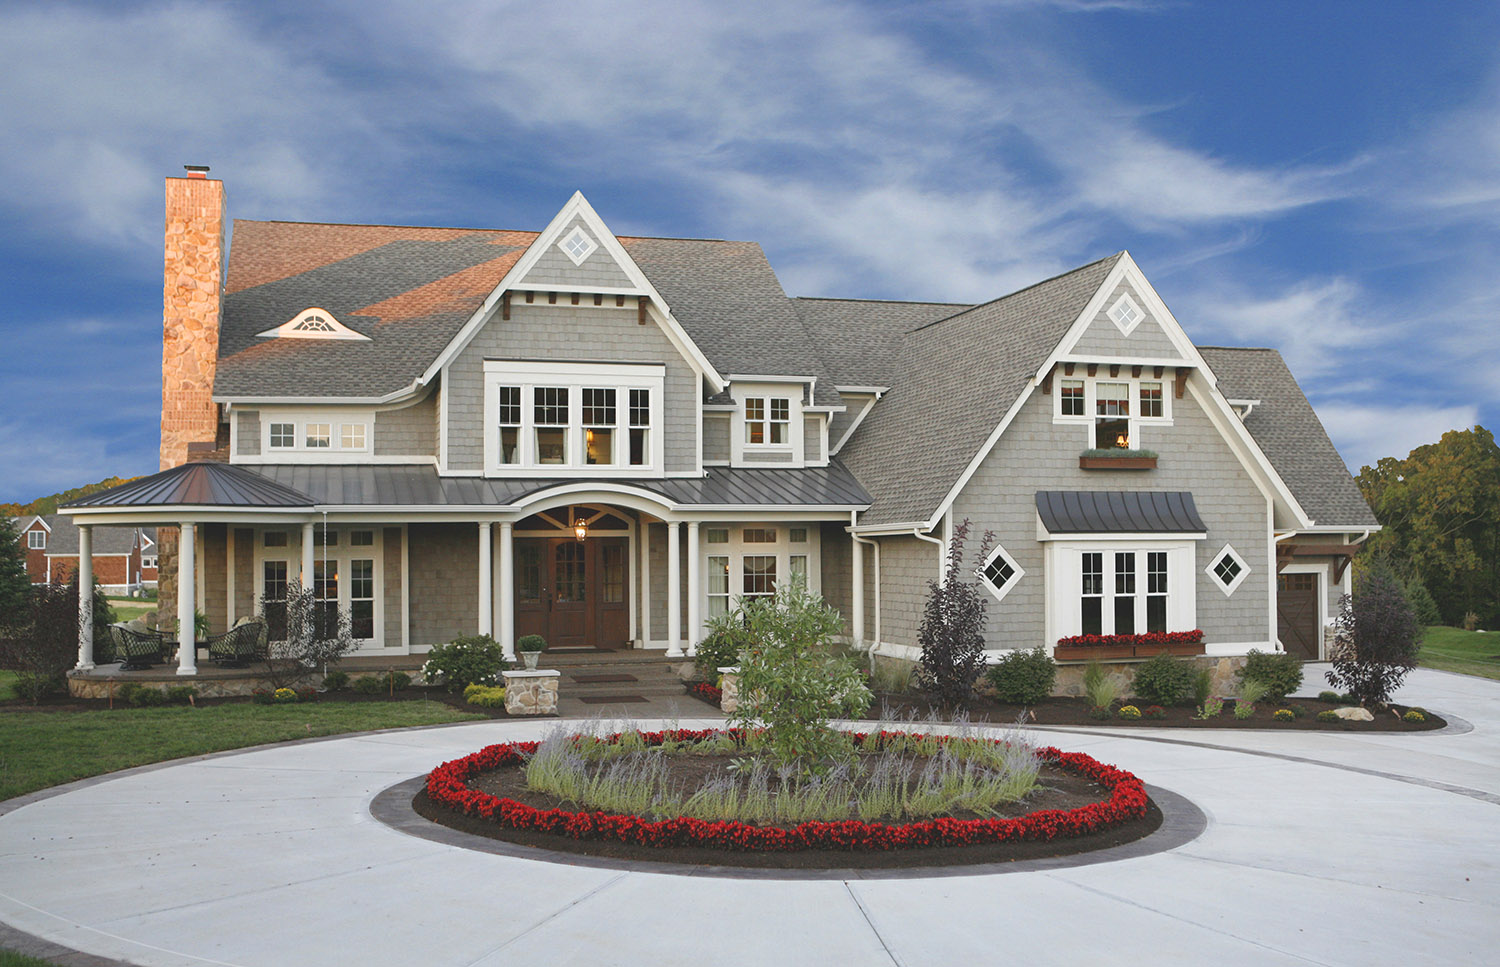 Home Exterior Gallery From New Builds Old Town Design Group